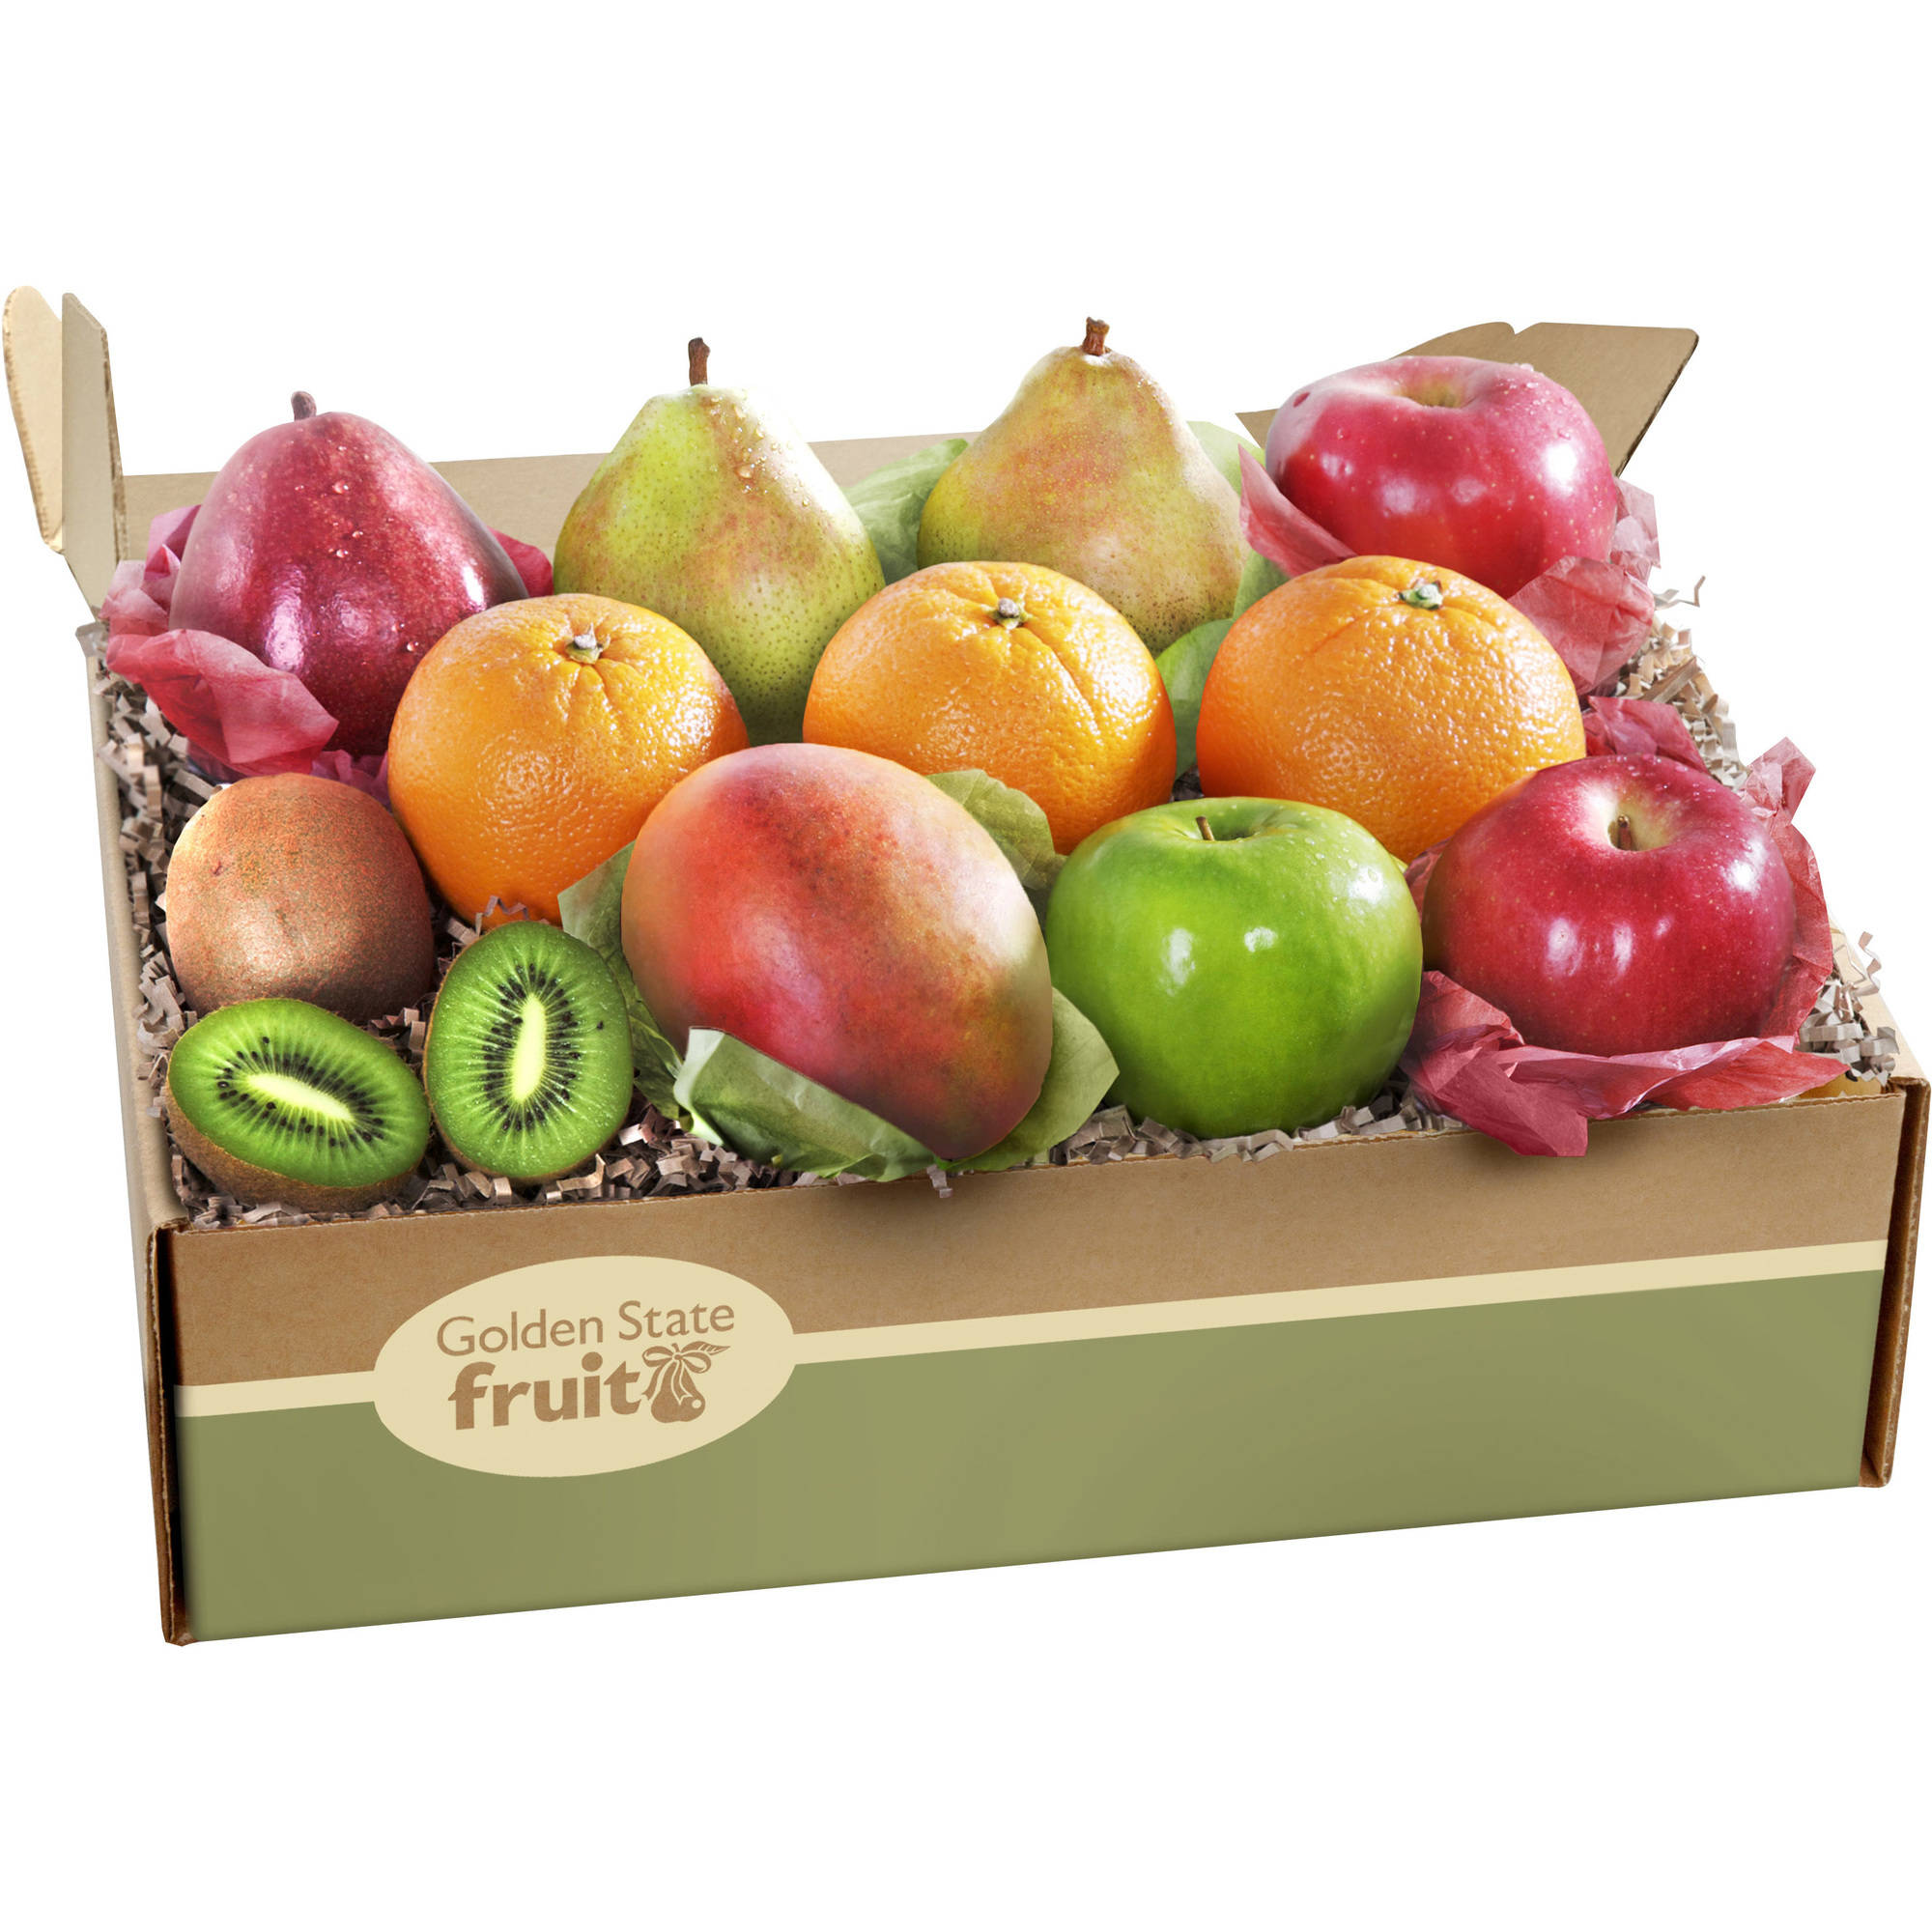 Golden State Fruit Deluxe Collection Fruit Gift Box, 12 pc